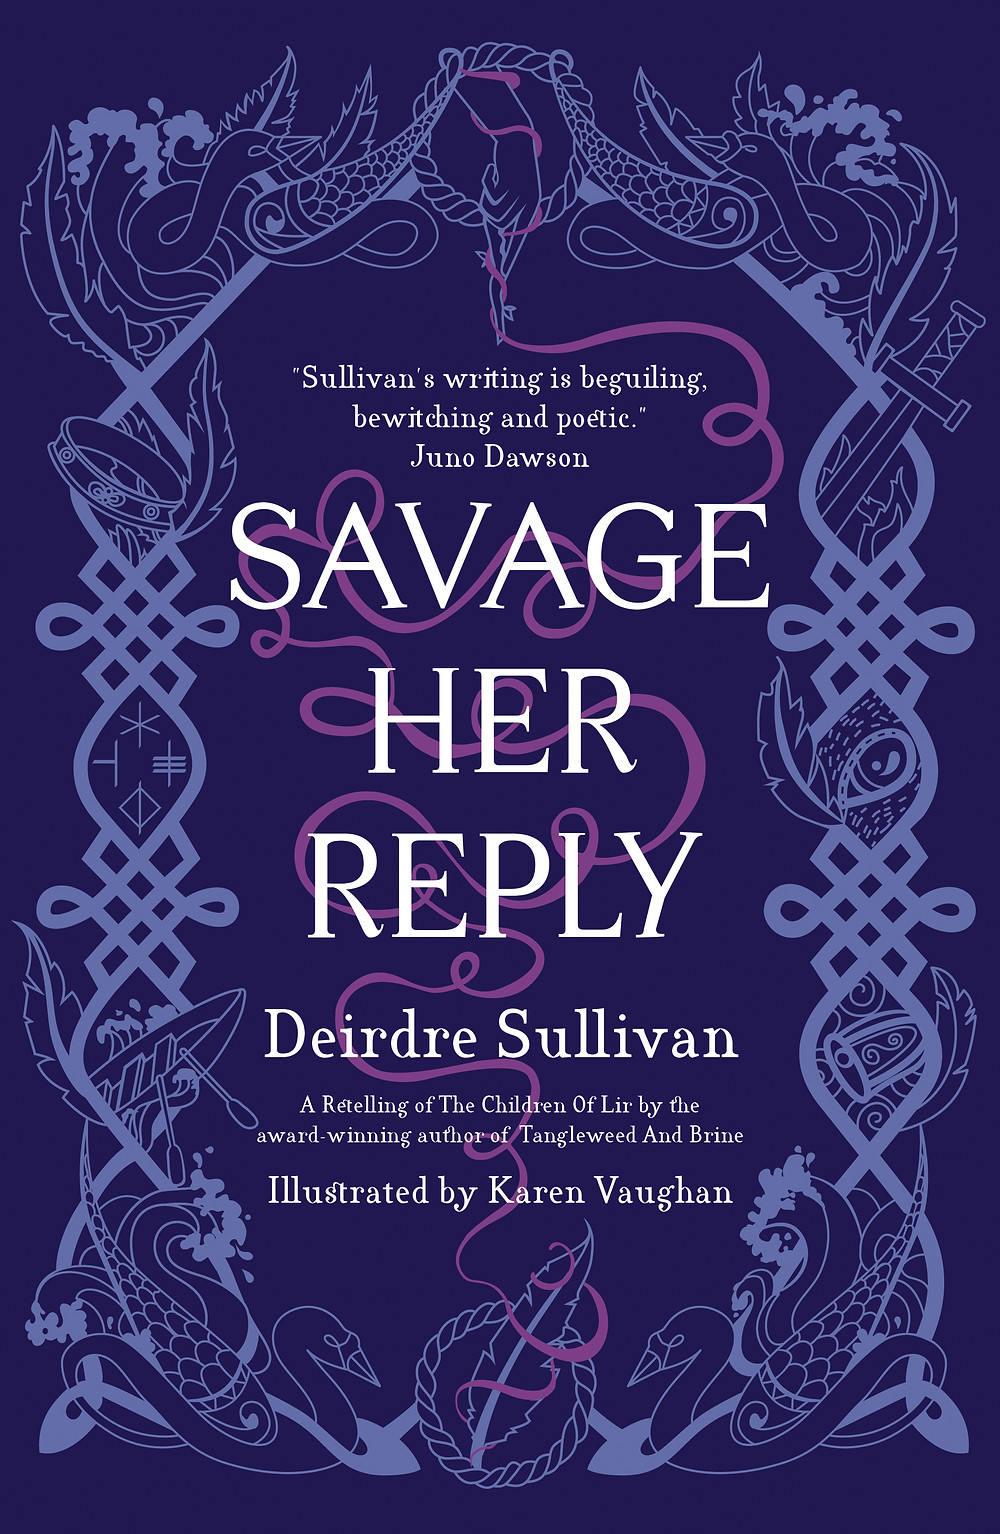 Savage Her Reply by Deirdre Sullivan, illustrated by Karen Vaughan, Little Island book cover